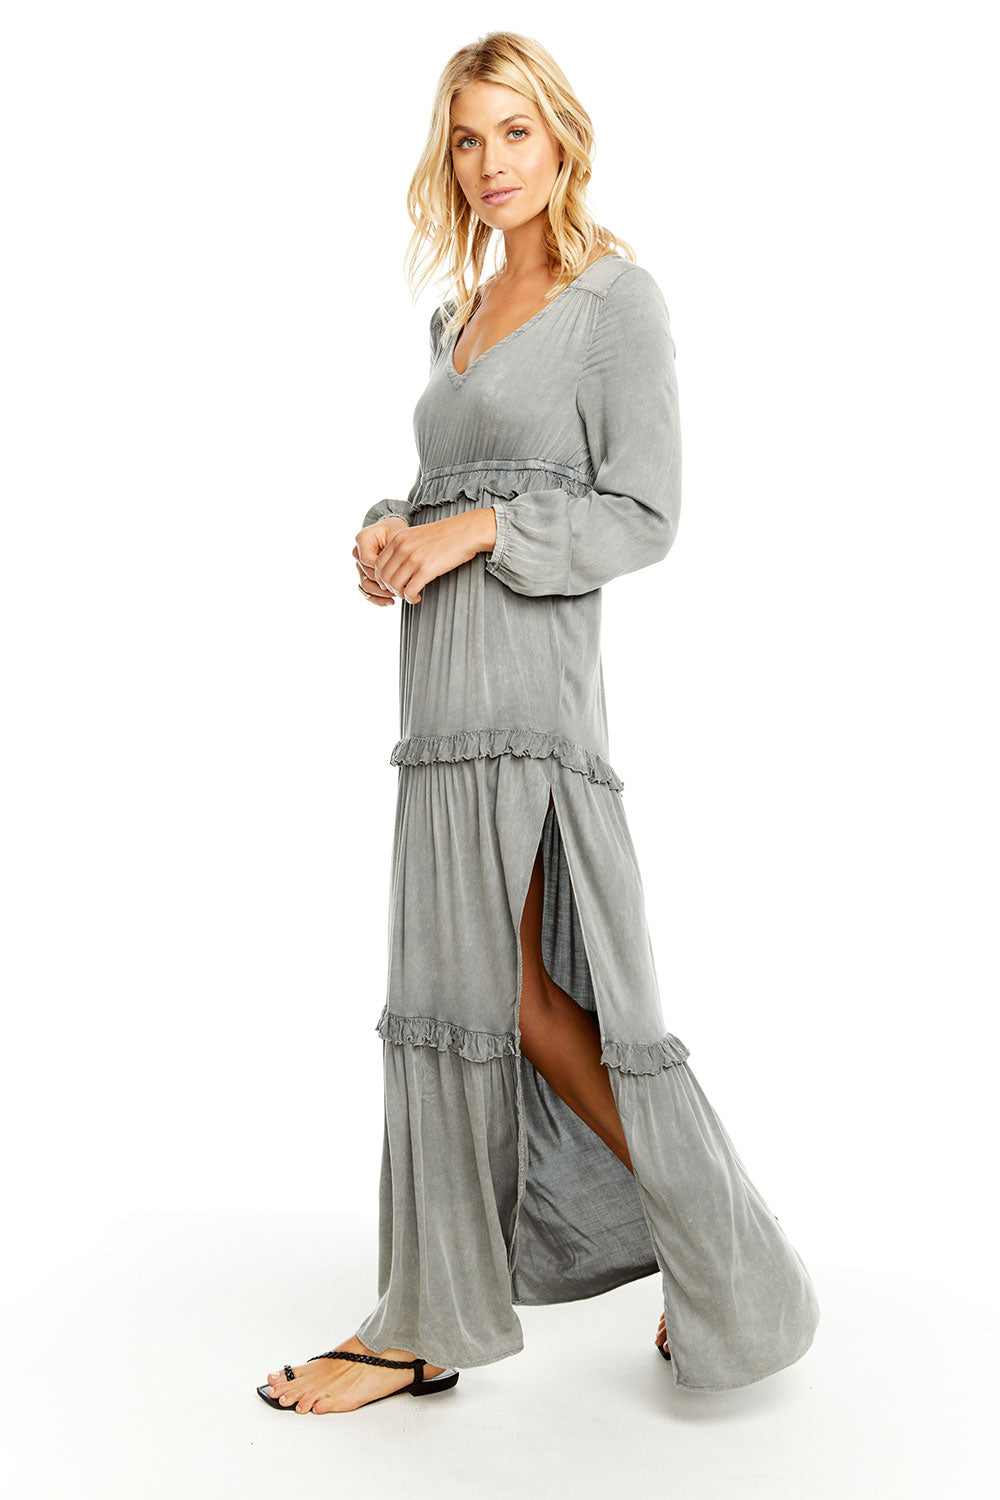 fbbdedcc09e14 HEIRLOOM WOVENS L/S V NECK RUFFLE TIER MAXI DRESS W/ SIDE SLIT